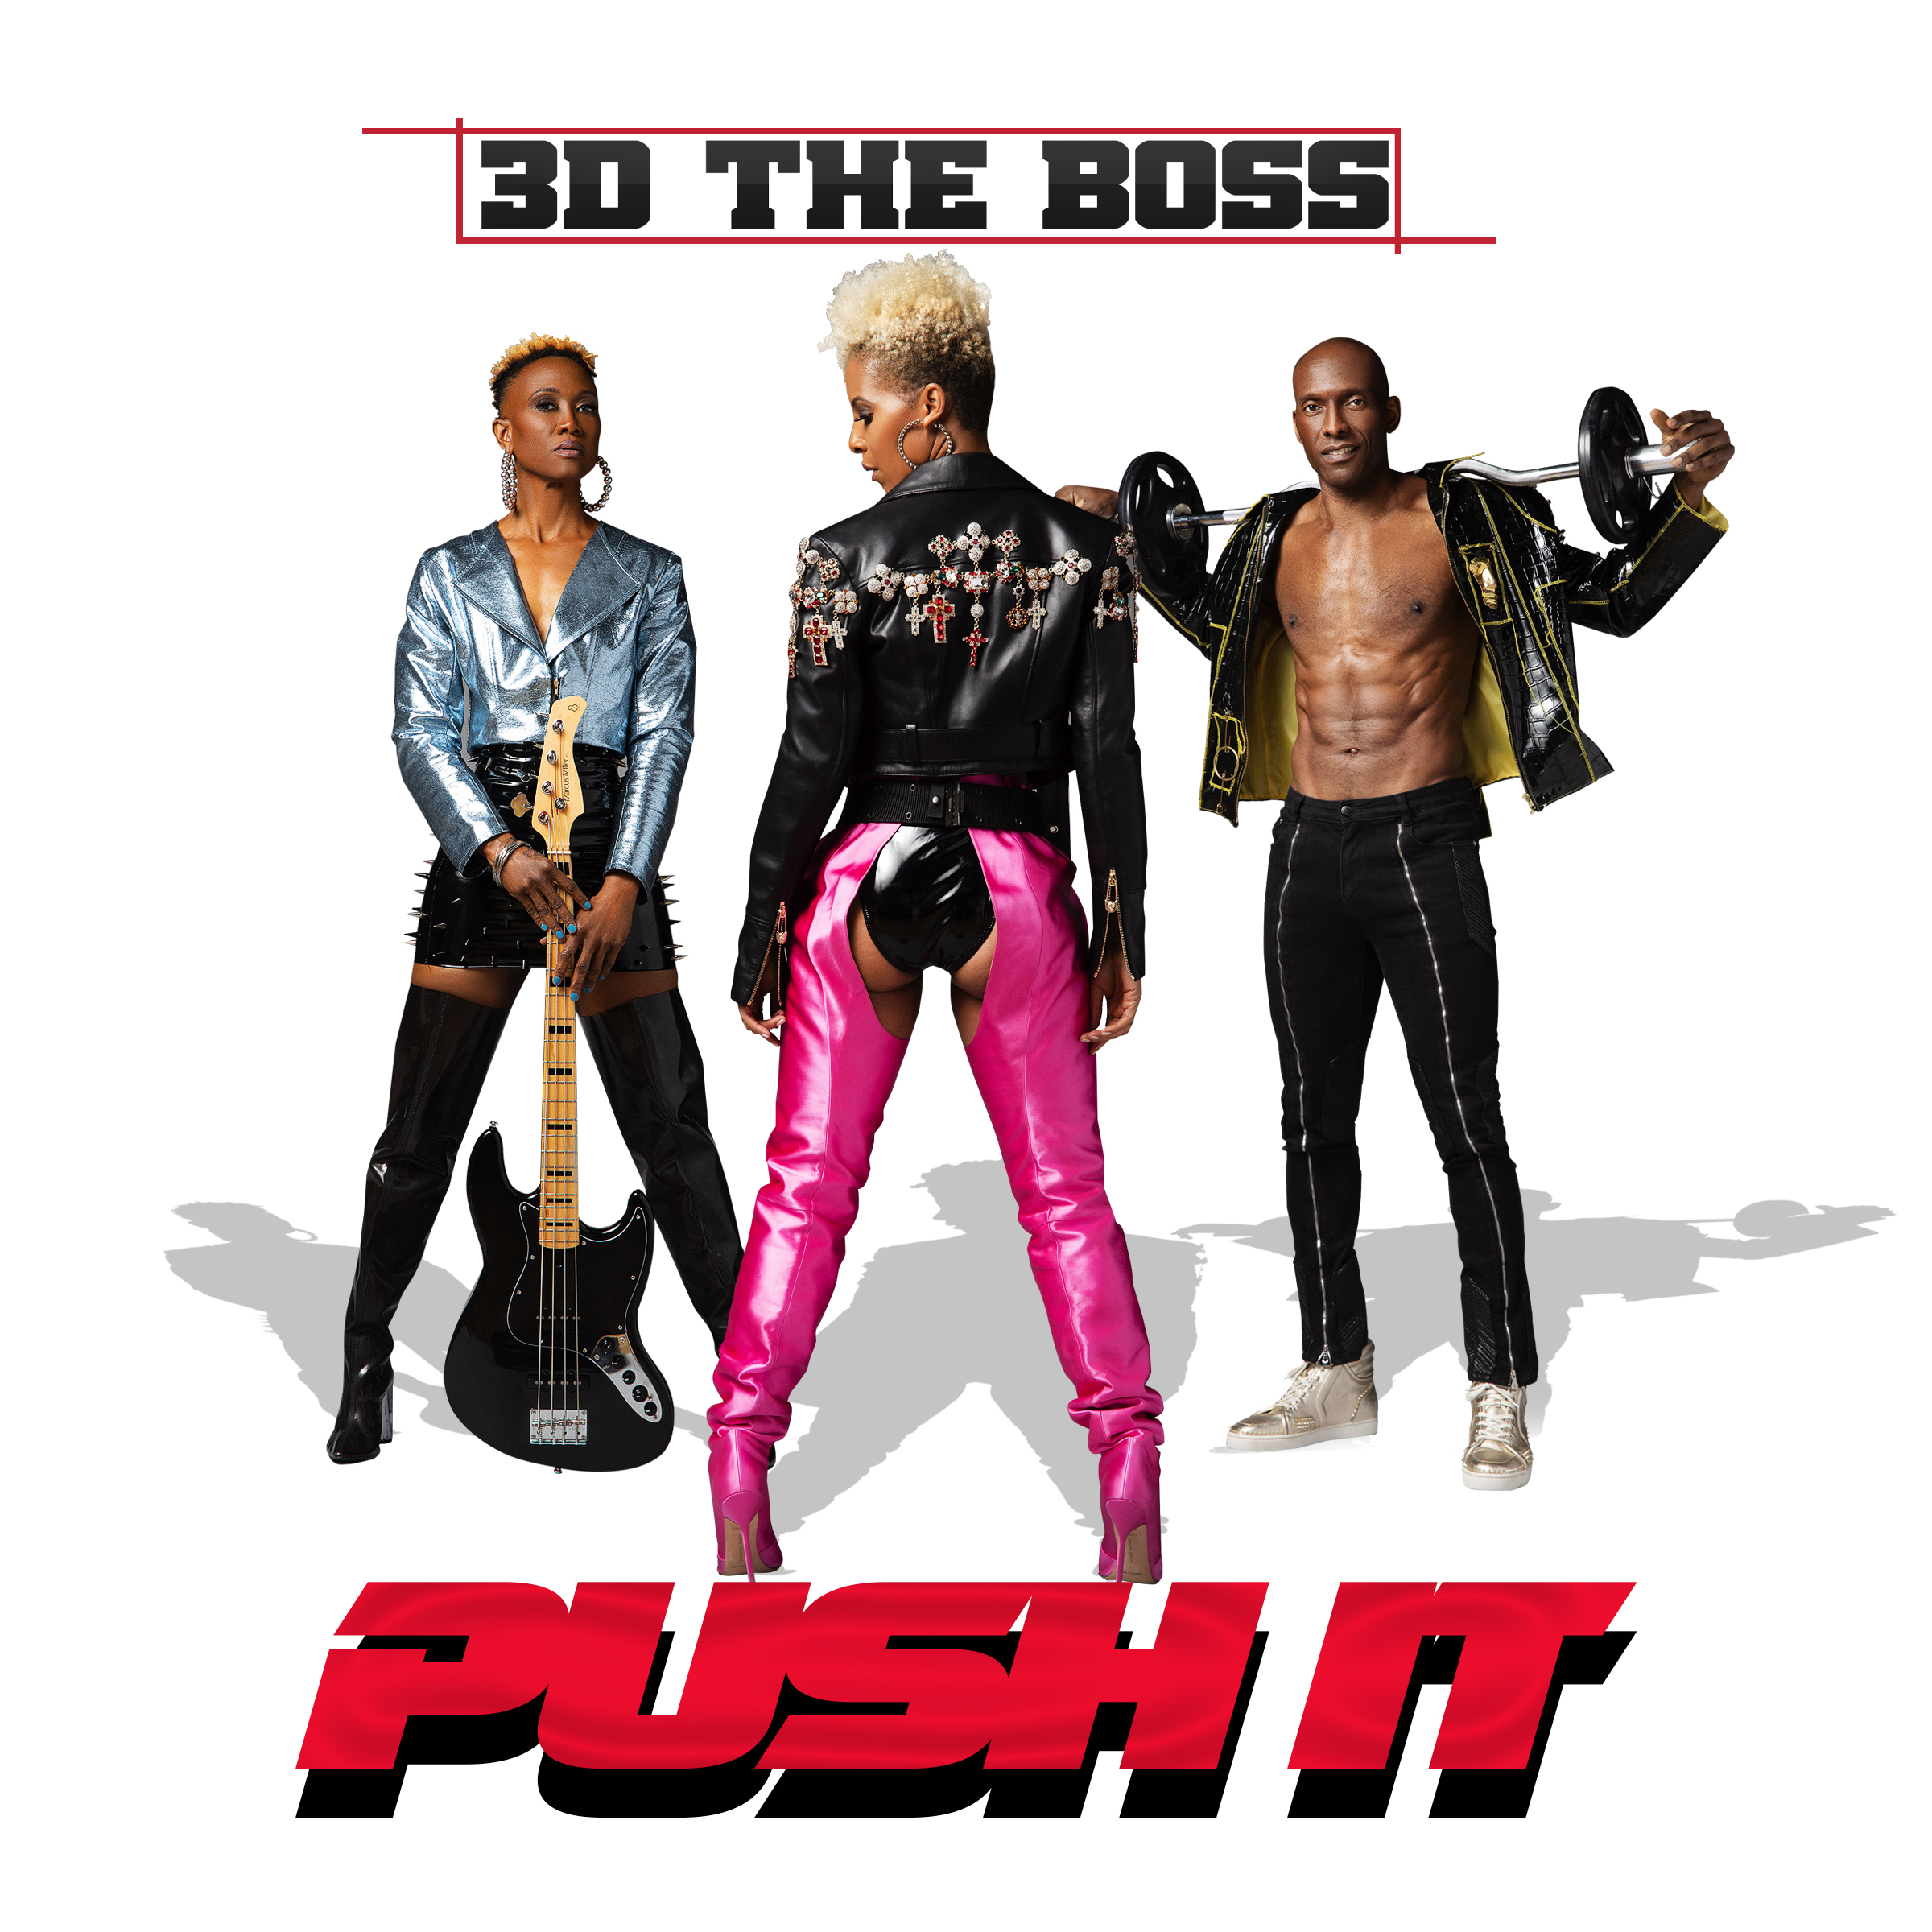 Health and fitness pop group 3D the Boss